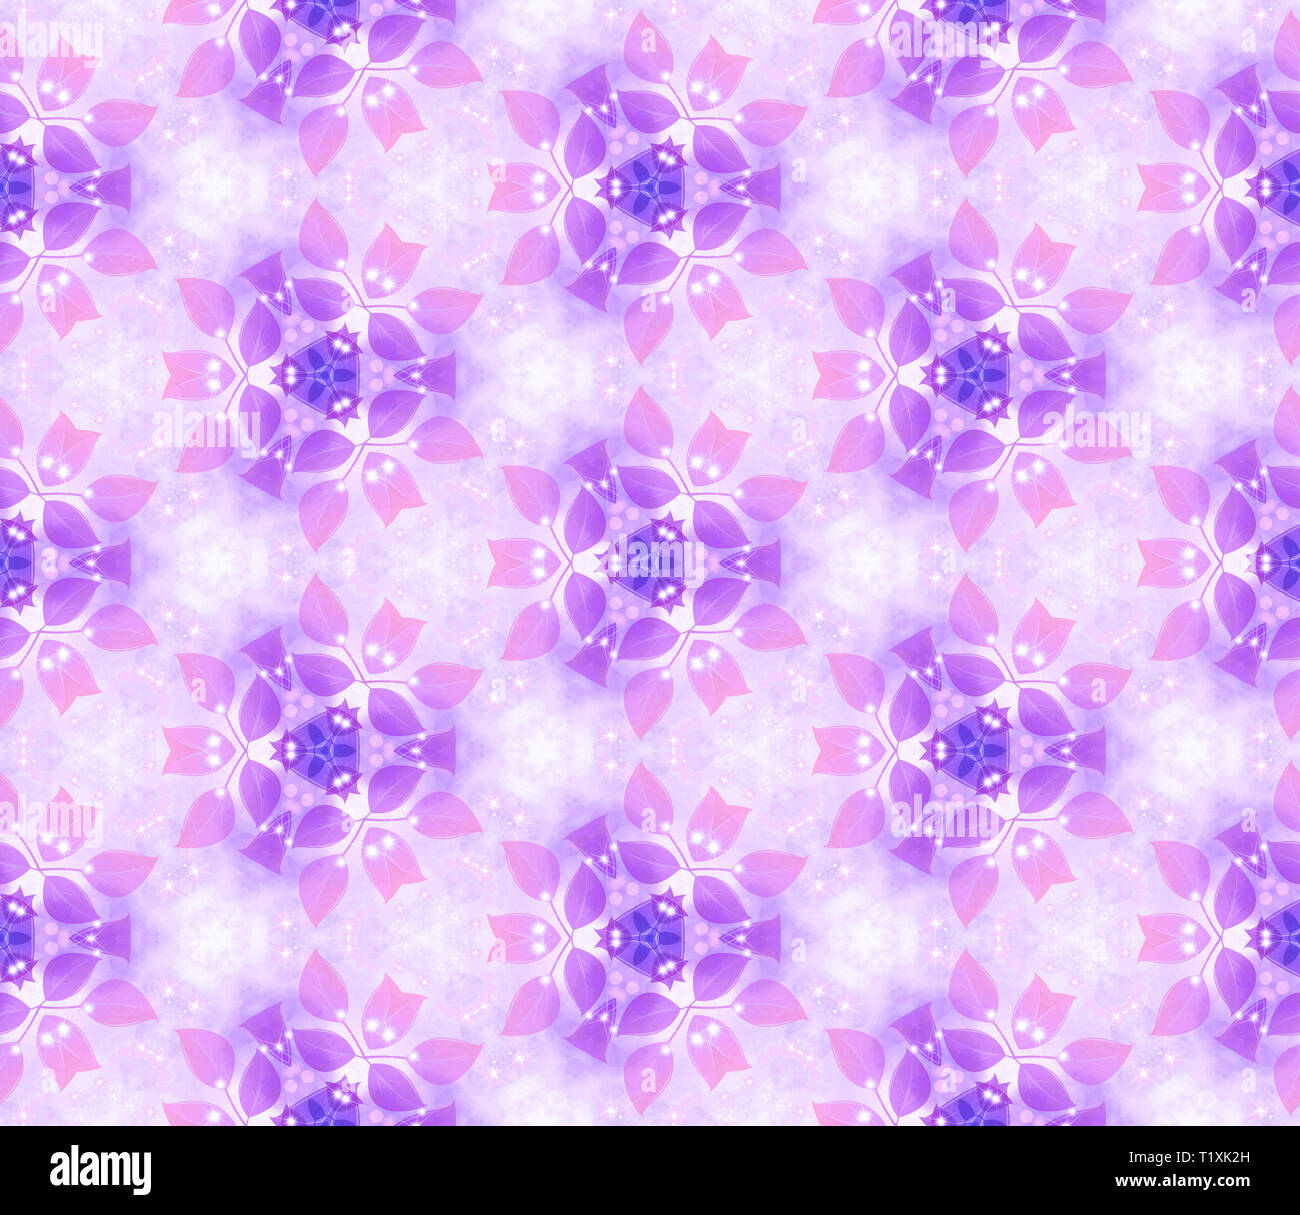 Seamless air pattern, gentle leaves, purple. Vegetable wall-paper in style of a fantasy. A romantic background for design, packing paper, greeting car - Stock Image